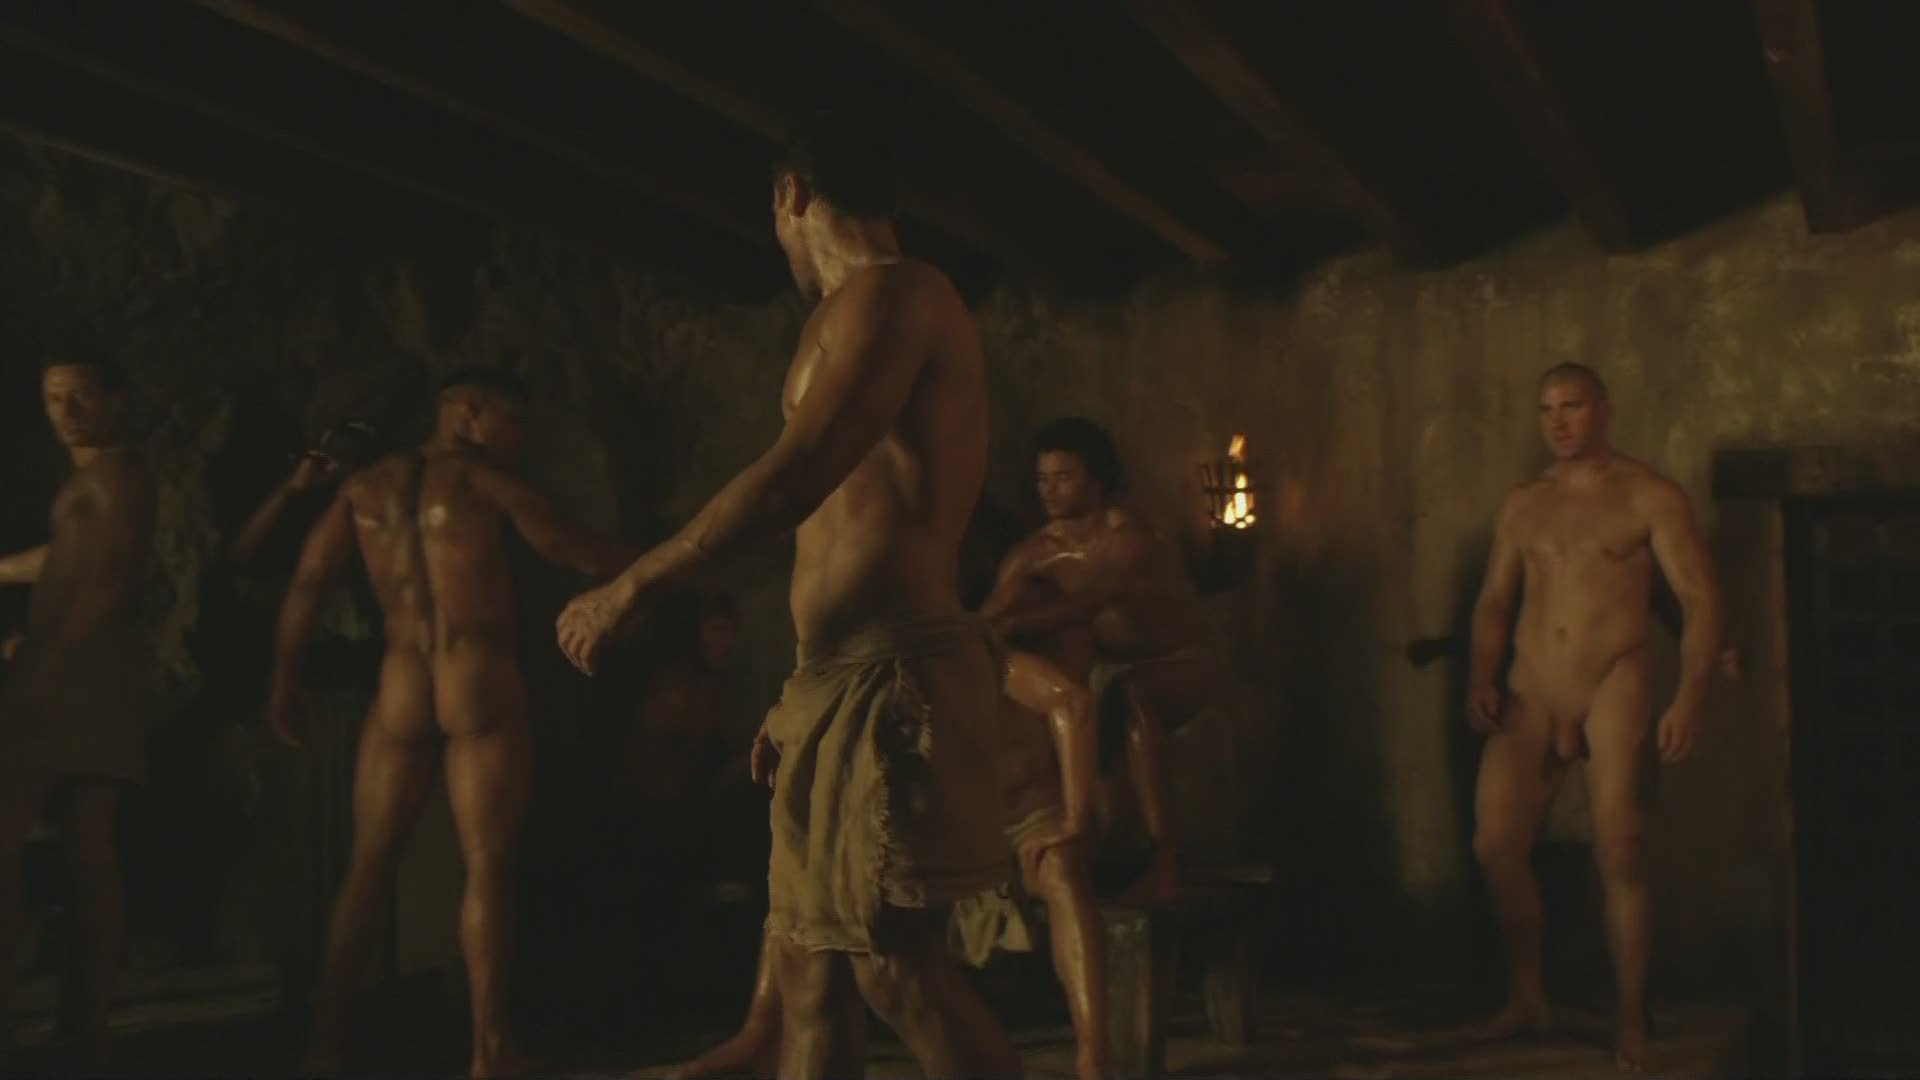 Impossible the naked men of spartacus nude yes consider